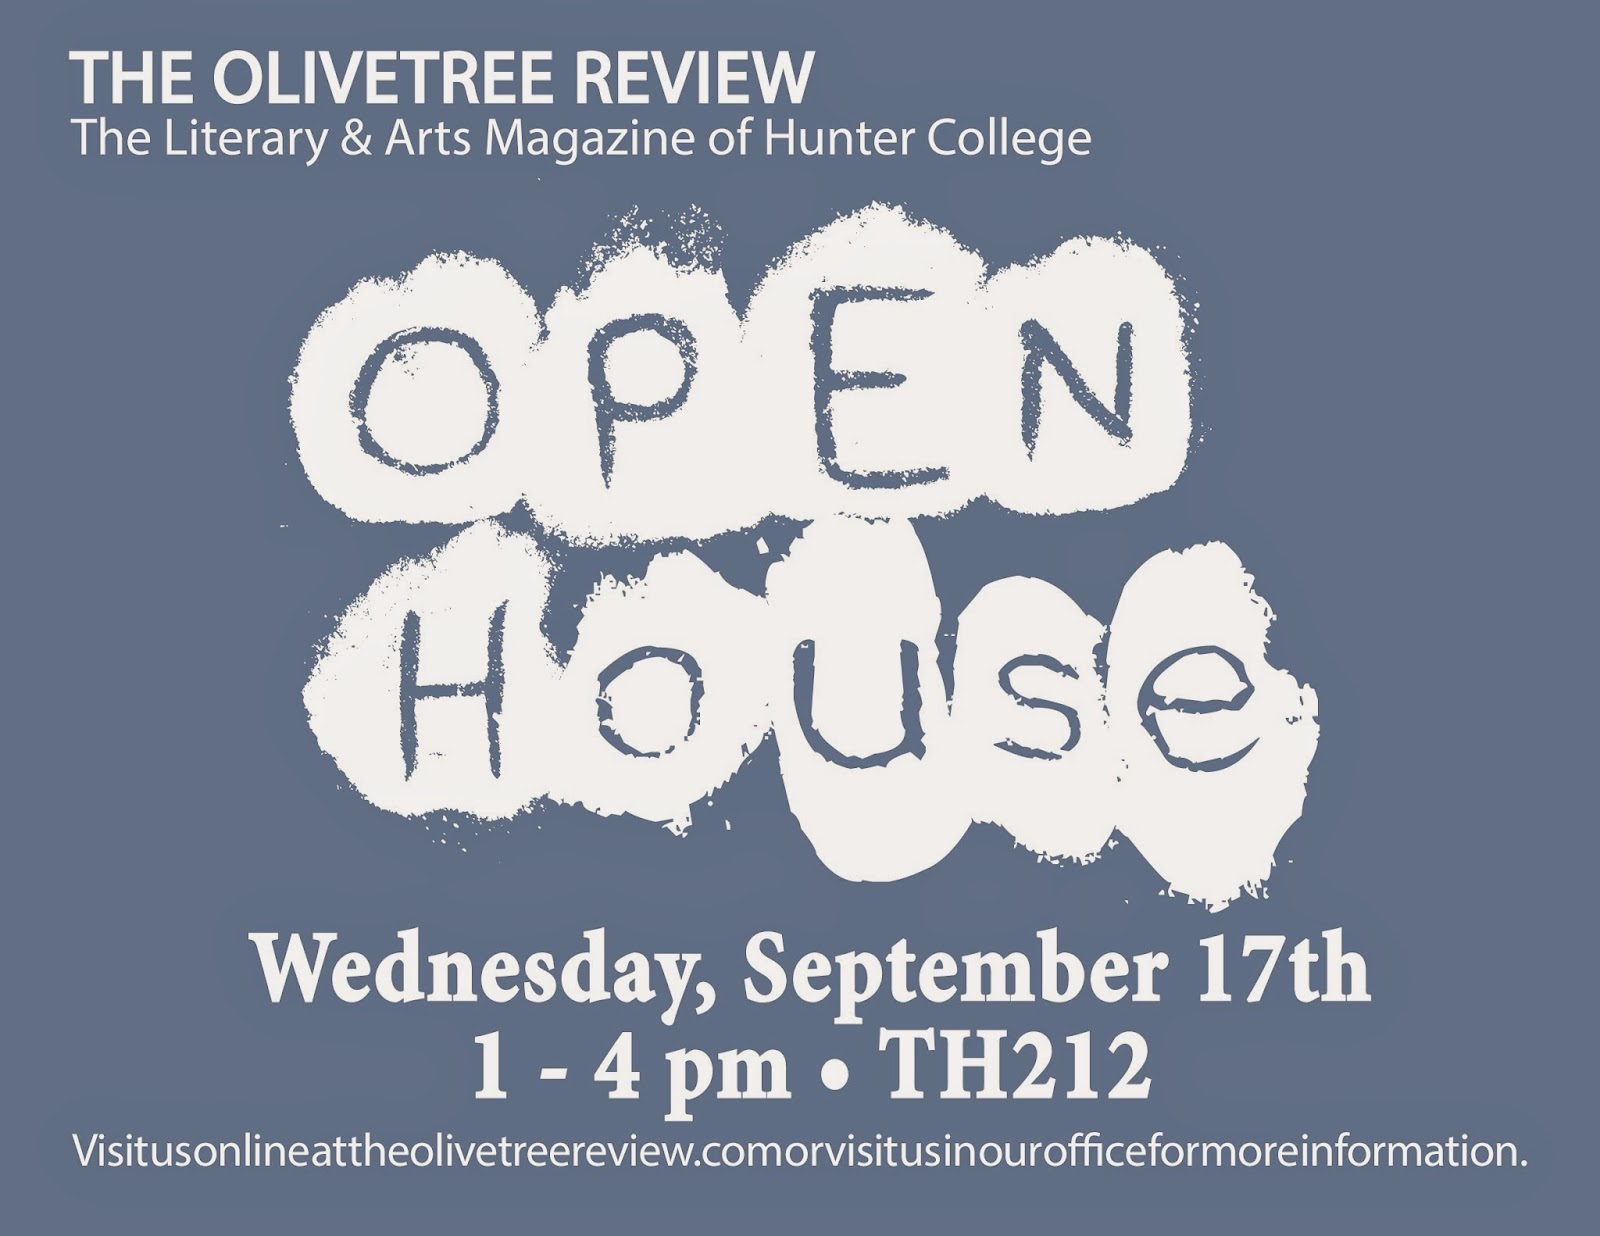 Olivetree Open House: Weds, September 17th, 1-4pm / TH212